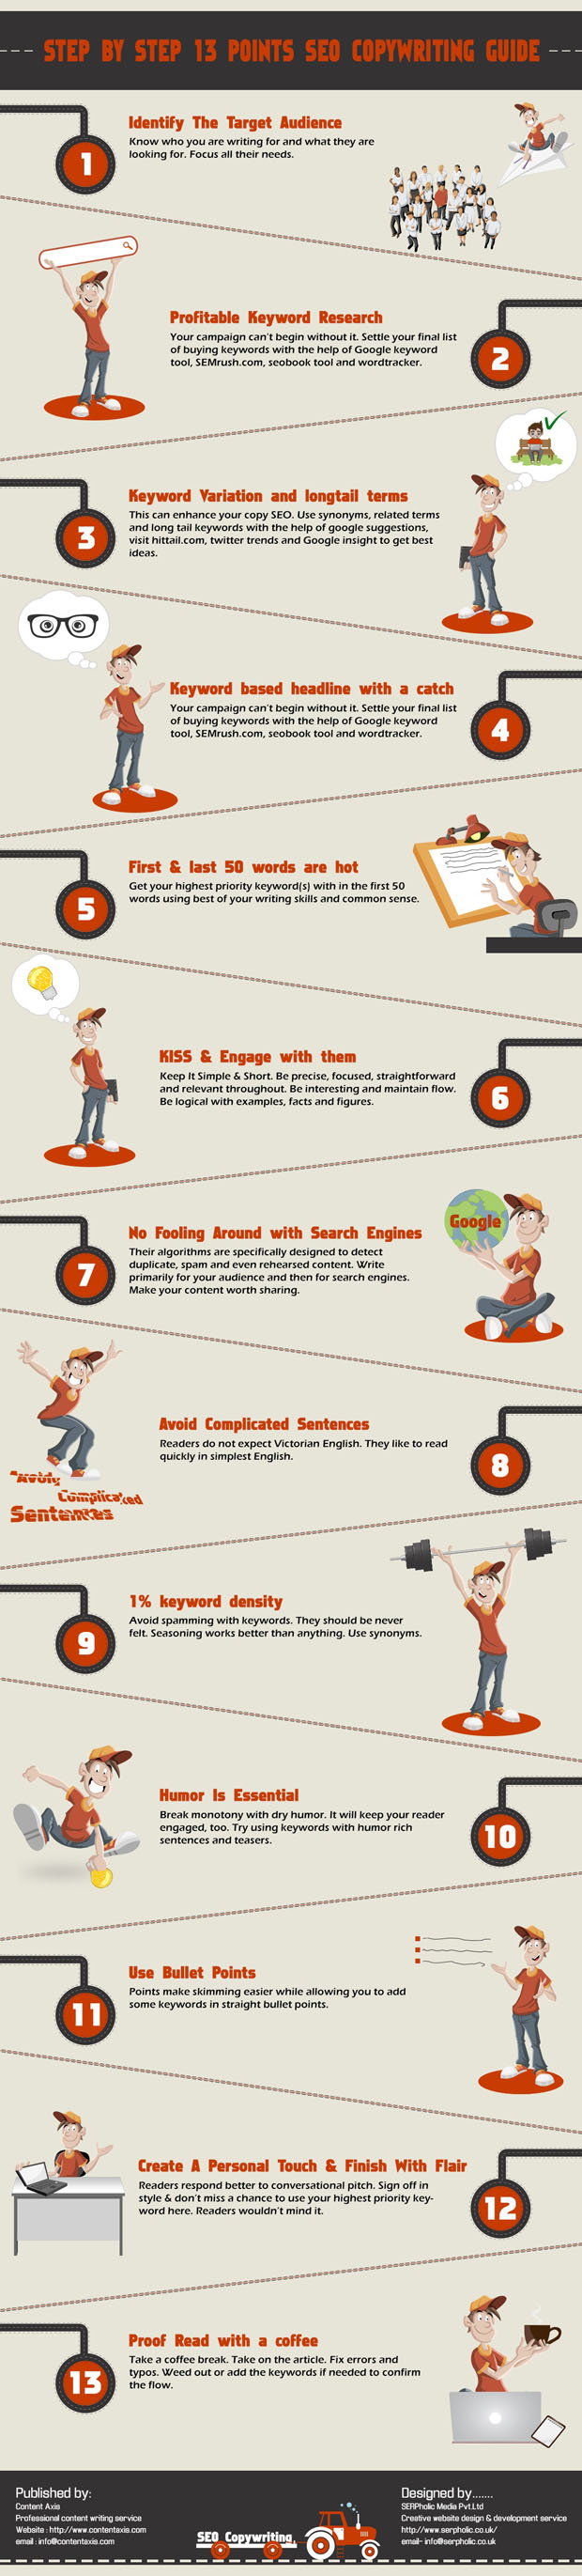 step by step 13 points seo copywriting guide infographic 13 Detailed Points SEO Copywriting Guide [Infographic]